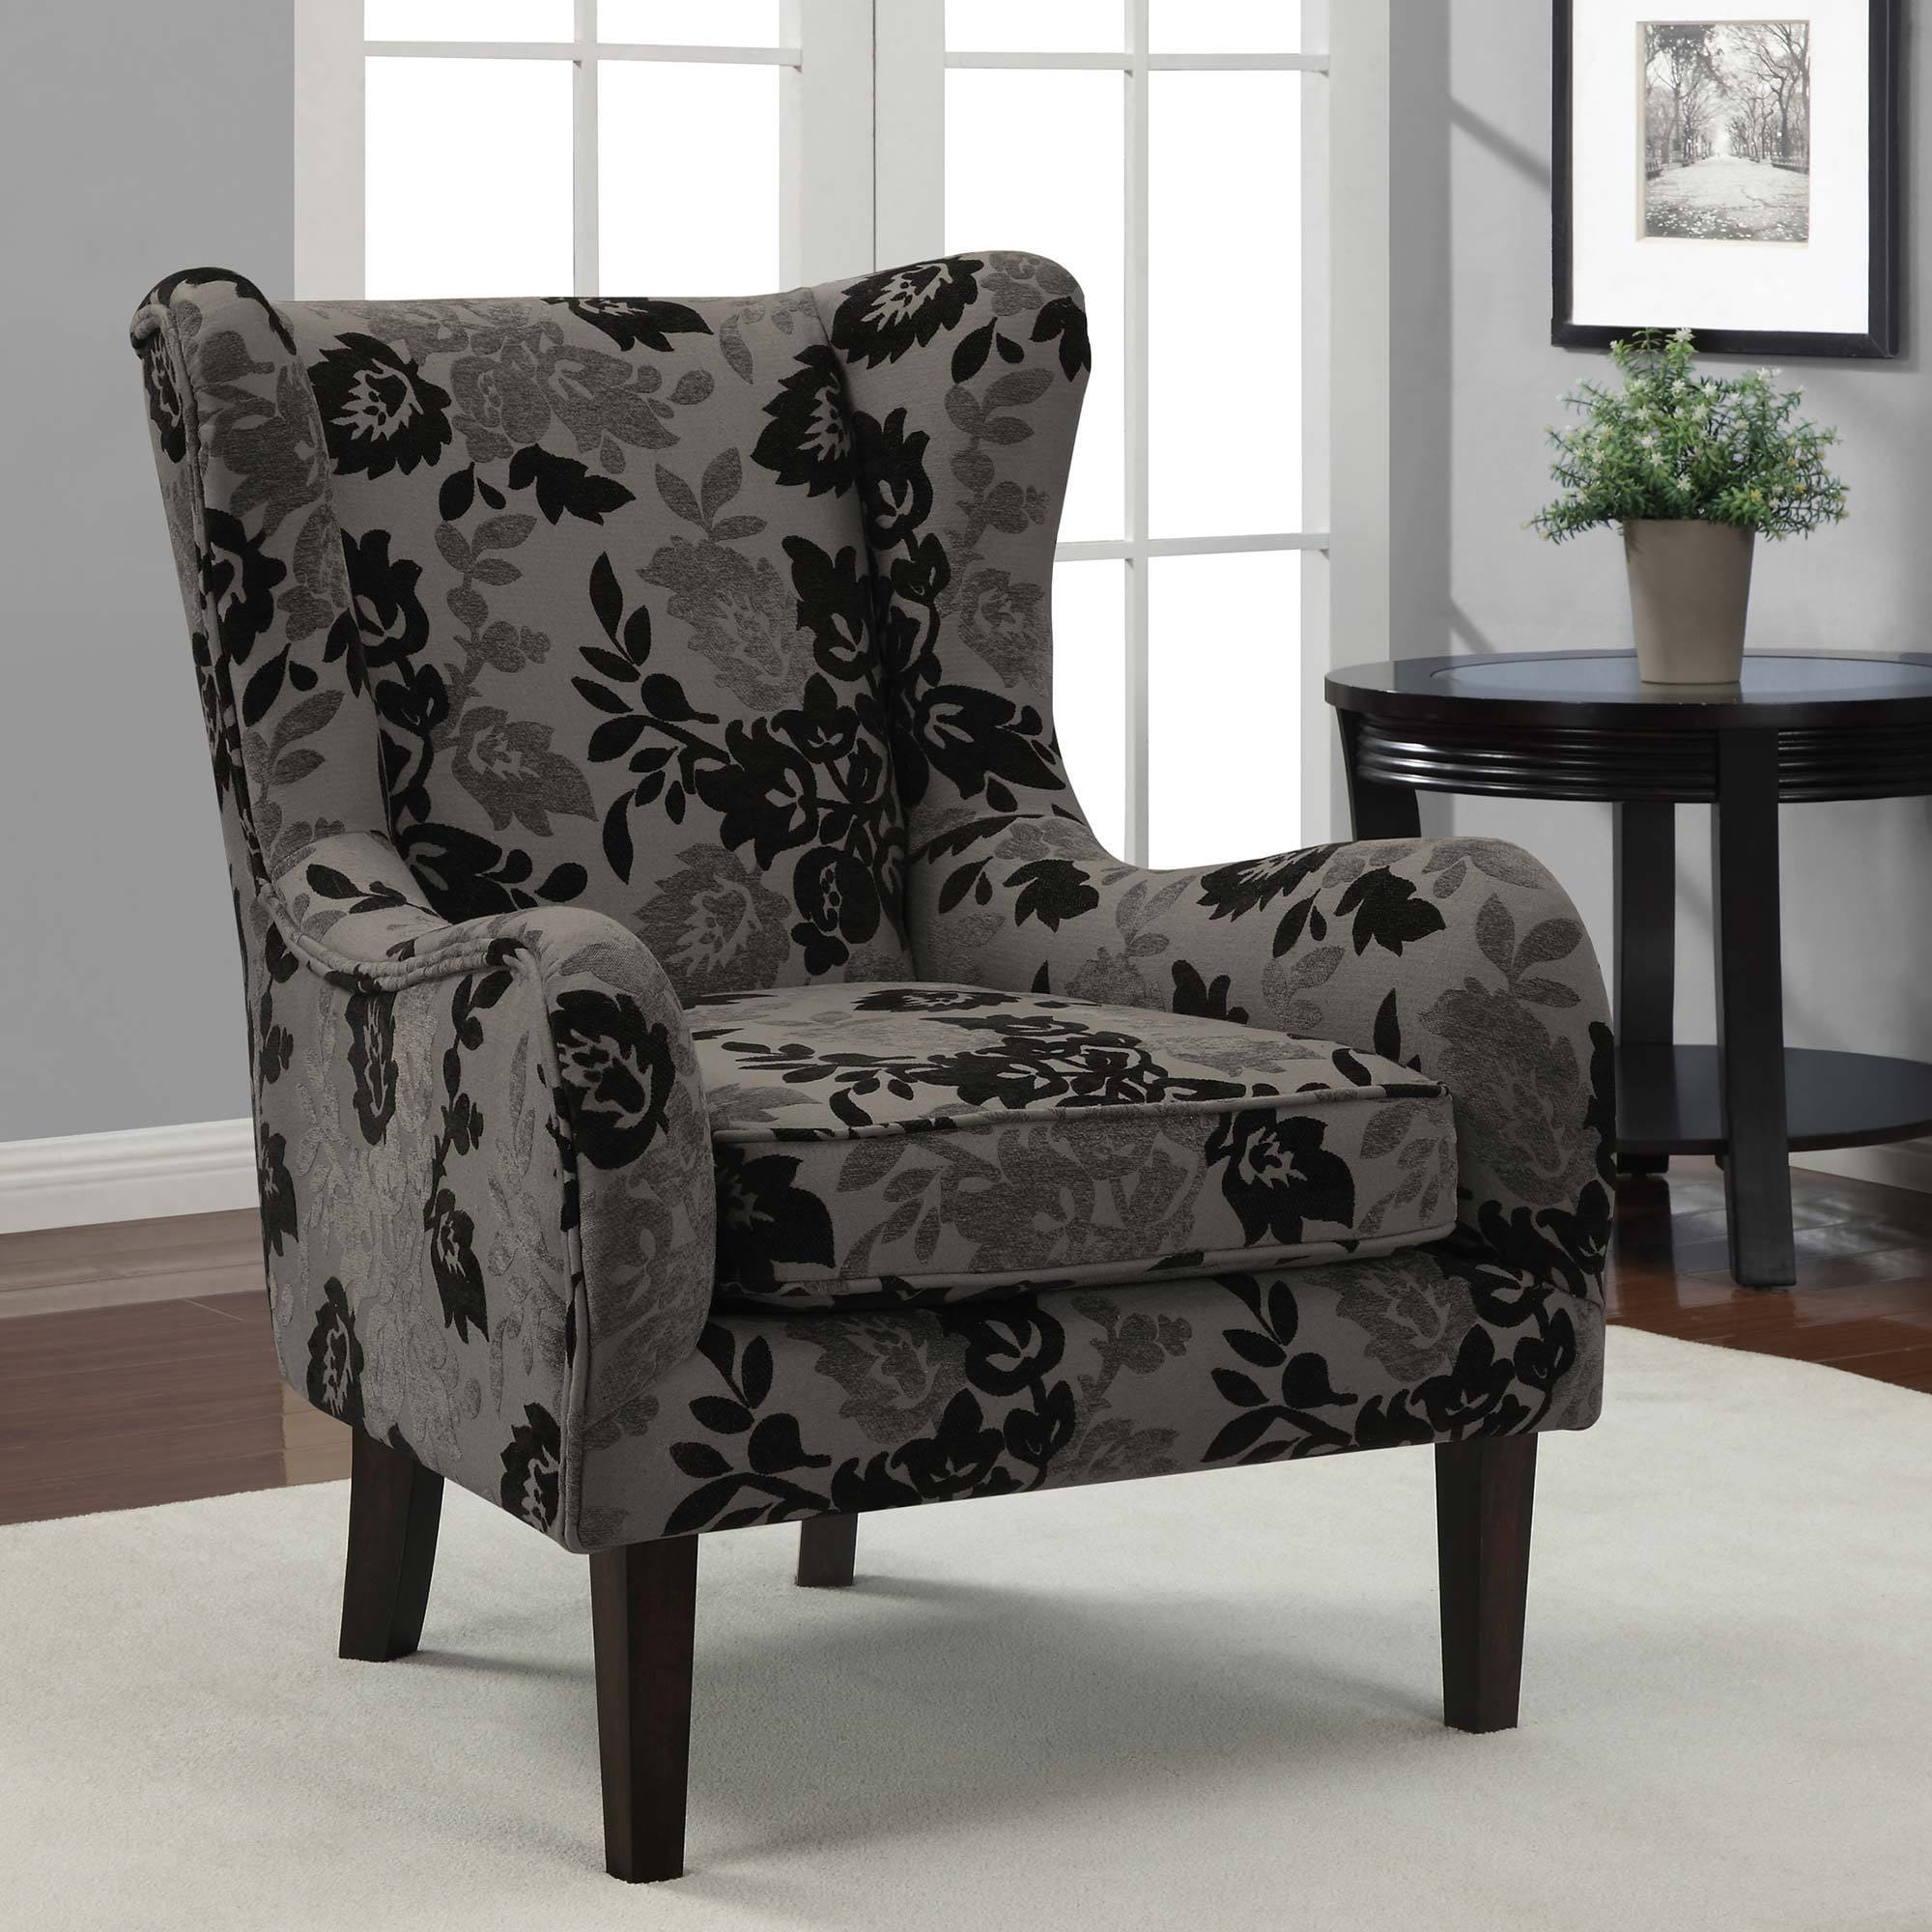 Shop Black Friday Deals On Floral Grey Black Curved Wing Chair Overstock 8108739